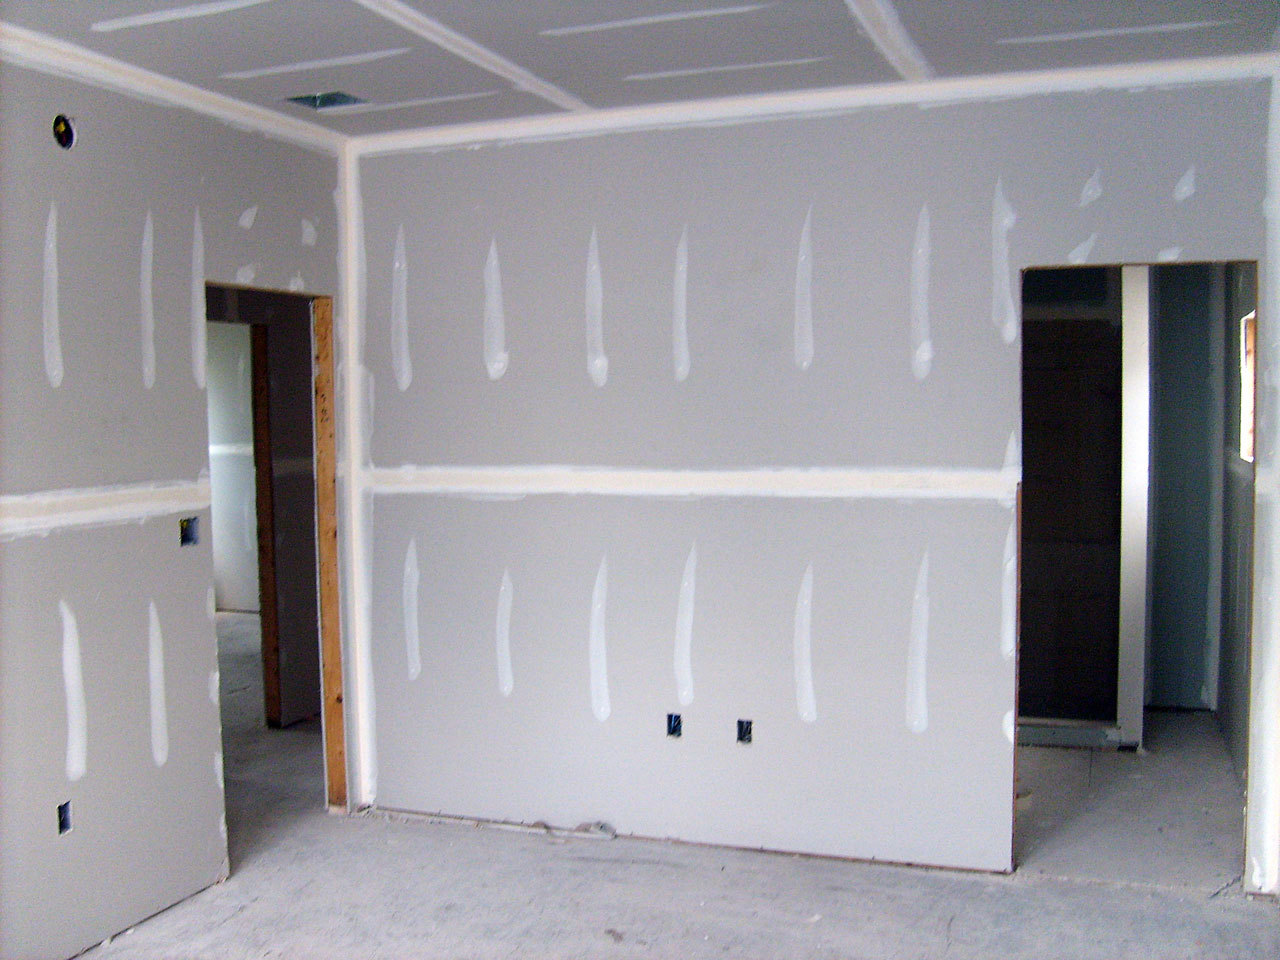 commercial drywall contractor & Commercial Drywall Contractor in Poulsbo WA | (360) 994-4925 ...